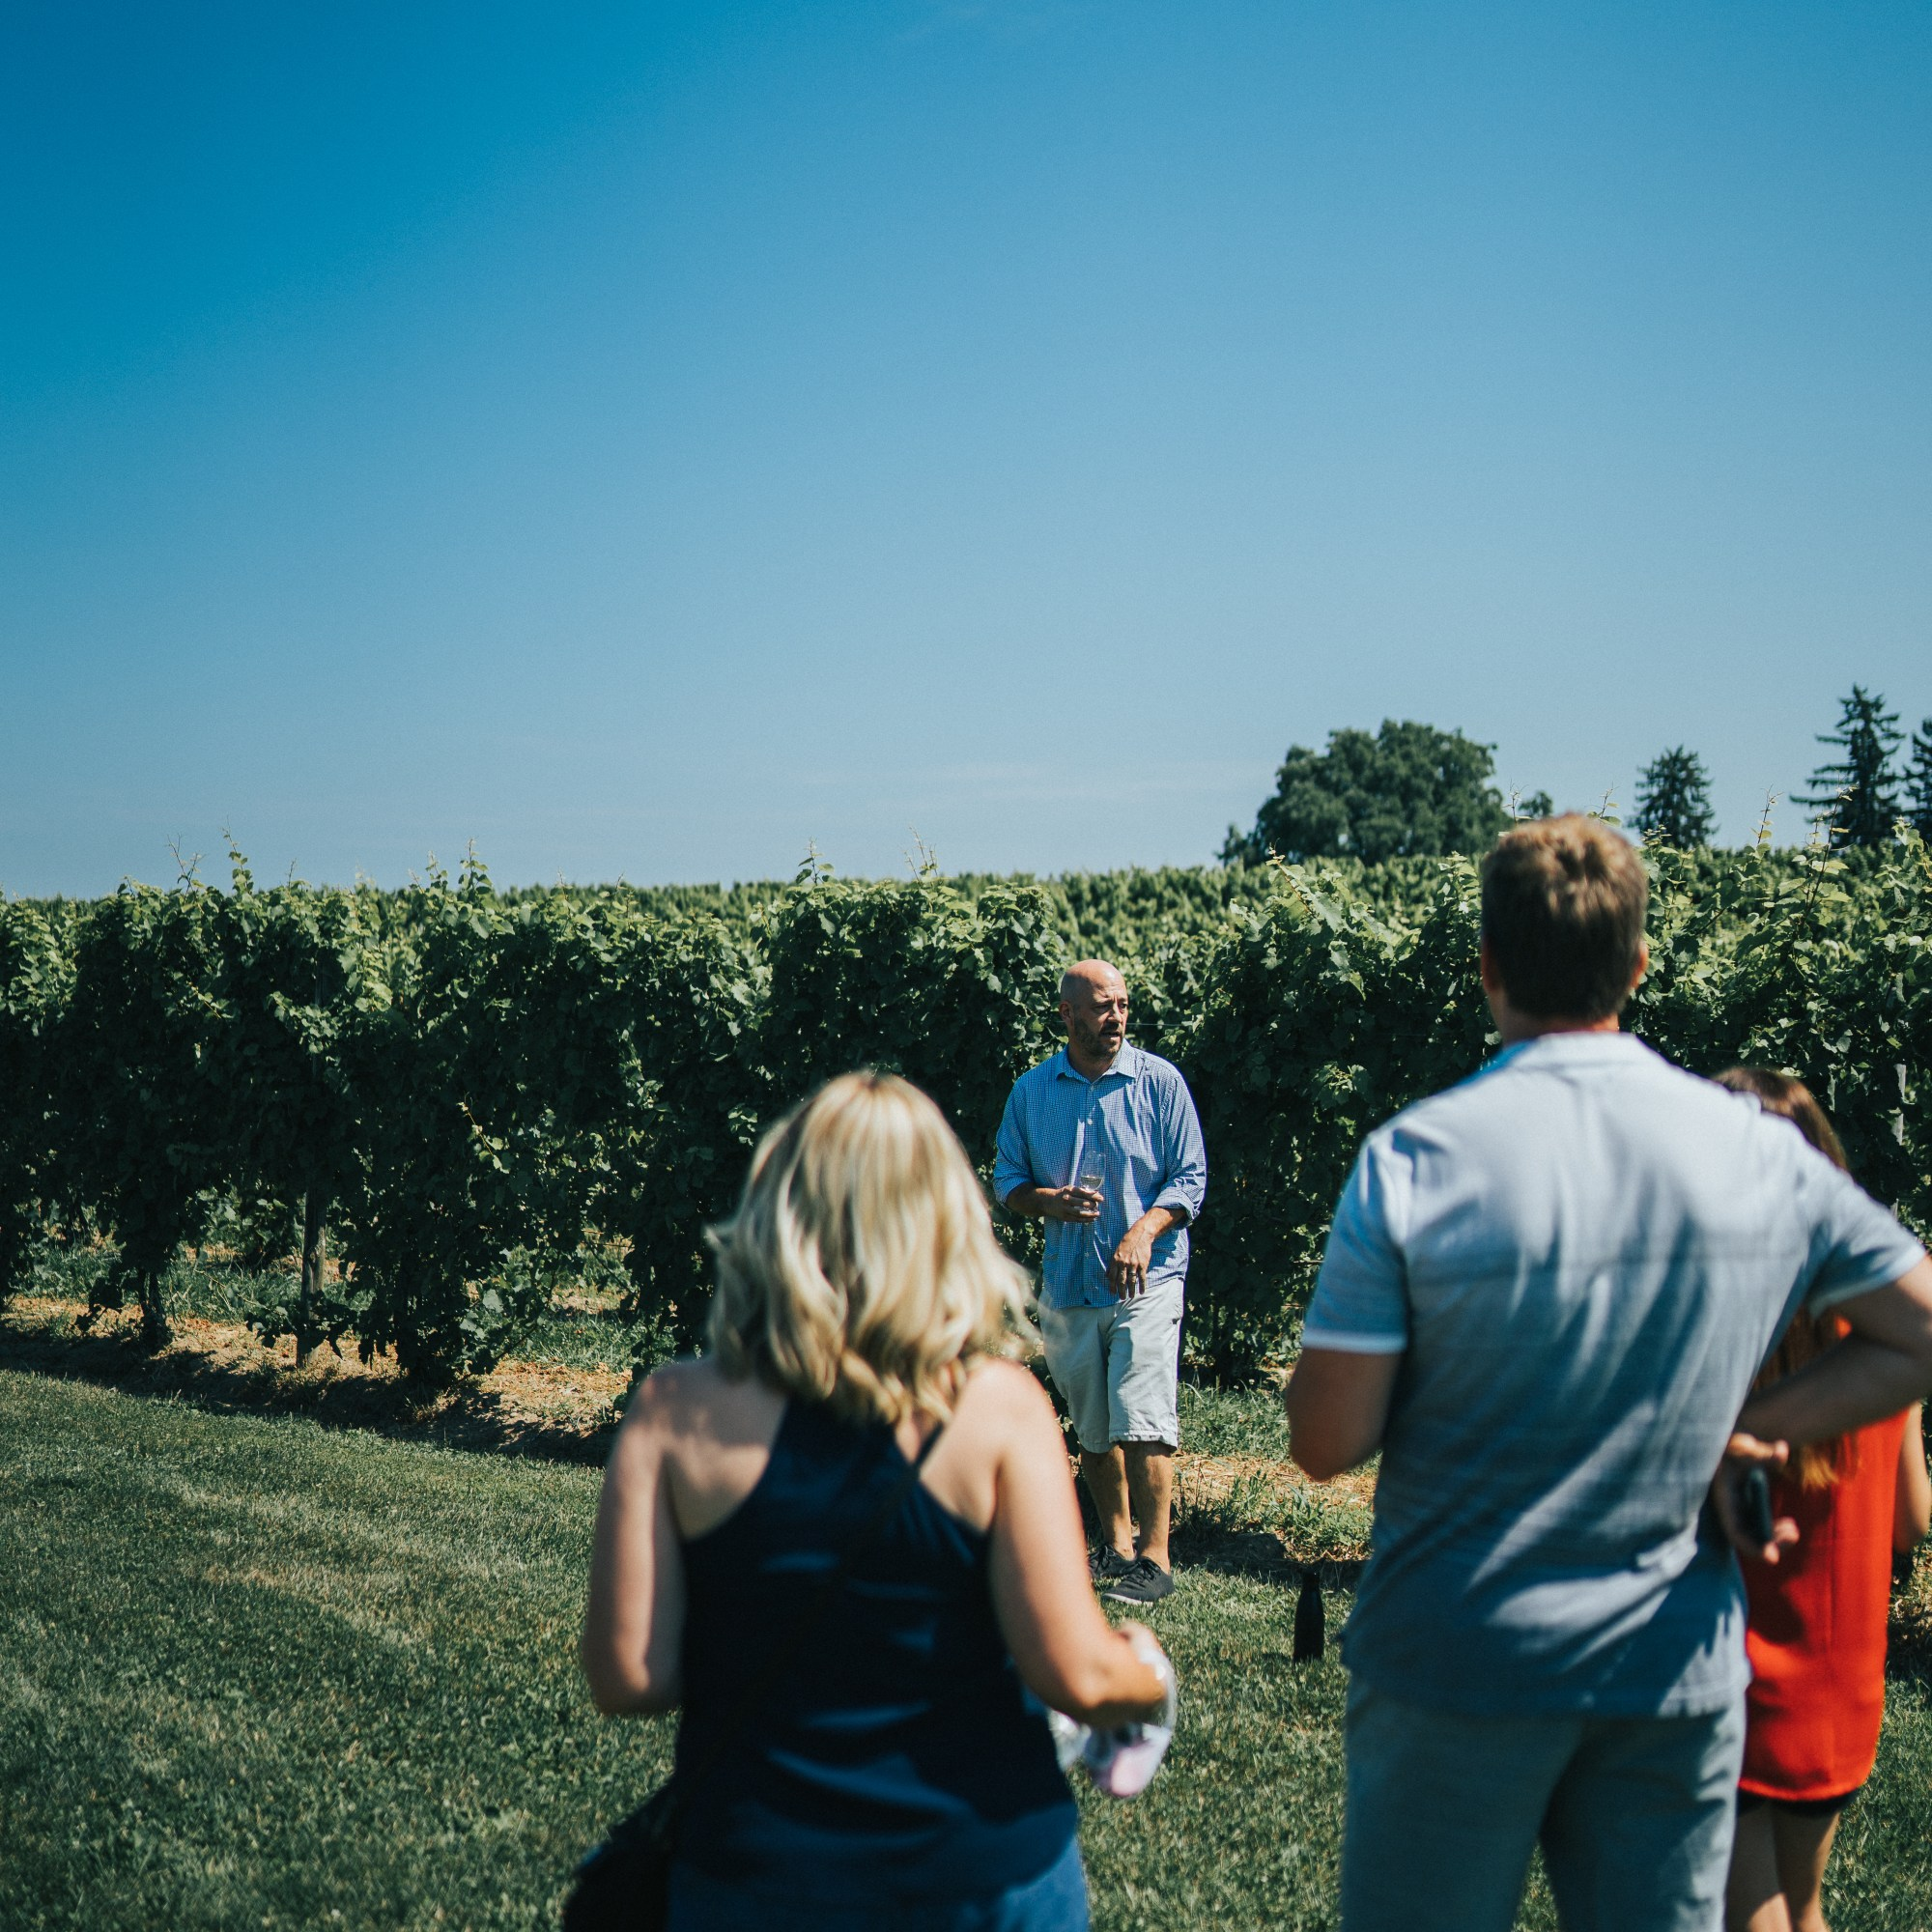 Sales Manager, Dan giving a tour in the vineyards at Fox Run